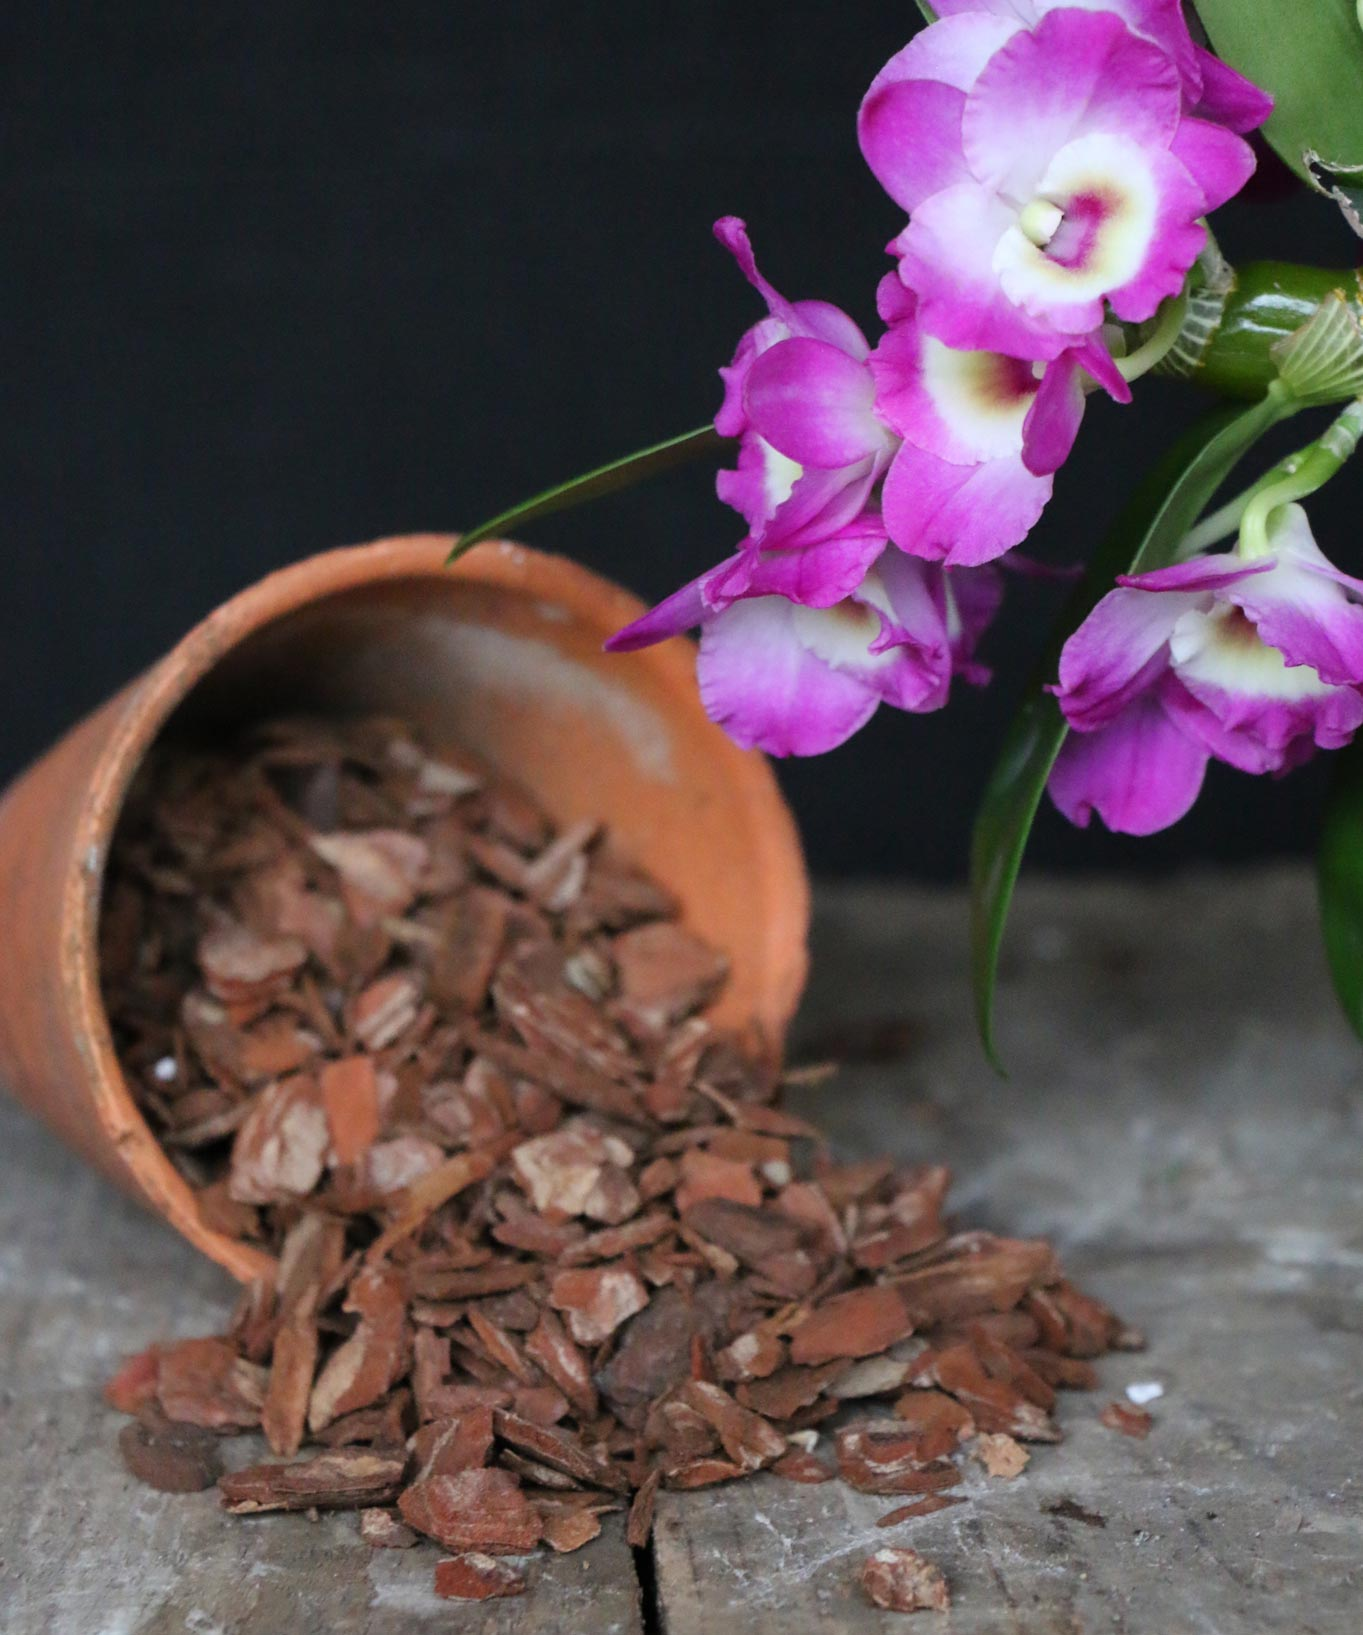 Better Gro Orchid Bark besides Mounting An Orchid in addition Biorbair Review Growing Miniature Orchids Biorbair Part Four additionally Lemon Guava likewise 2 Dendrobium kingianum Care Sheet. on growing orchids in bark